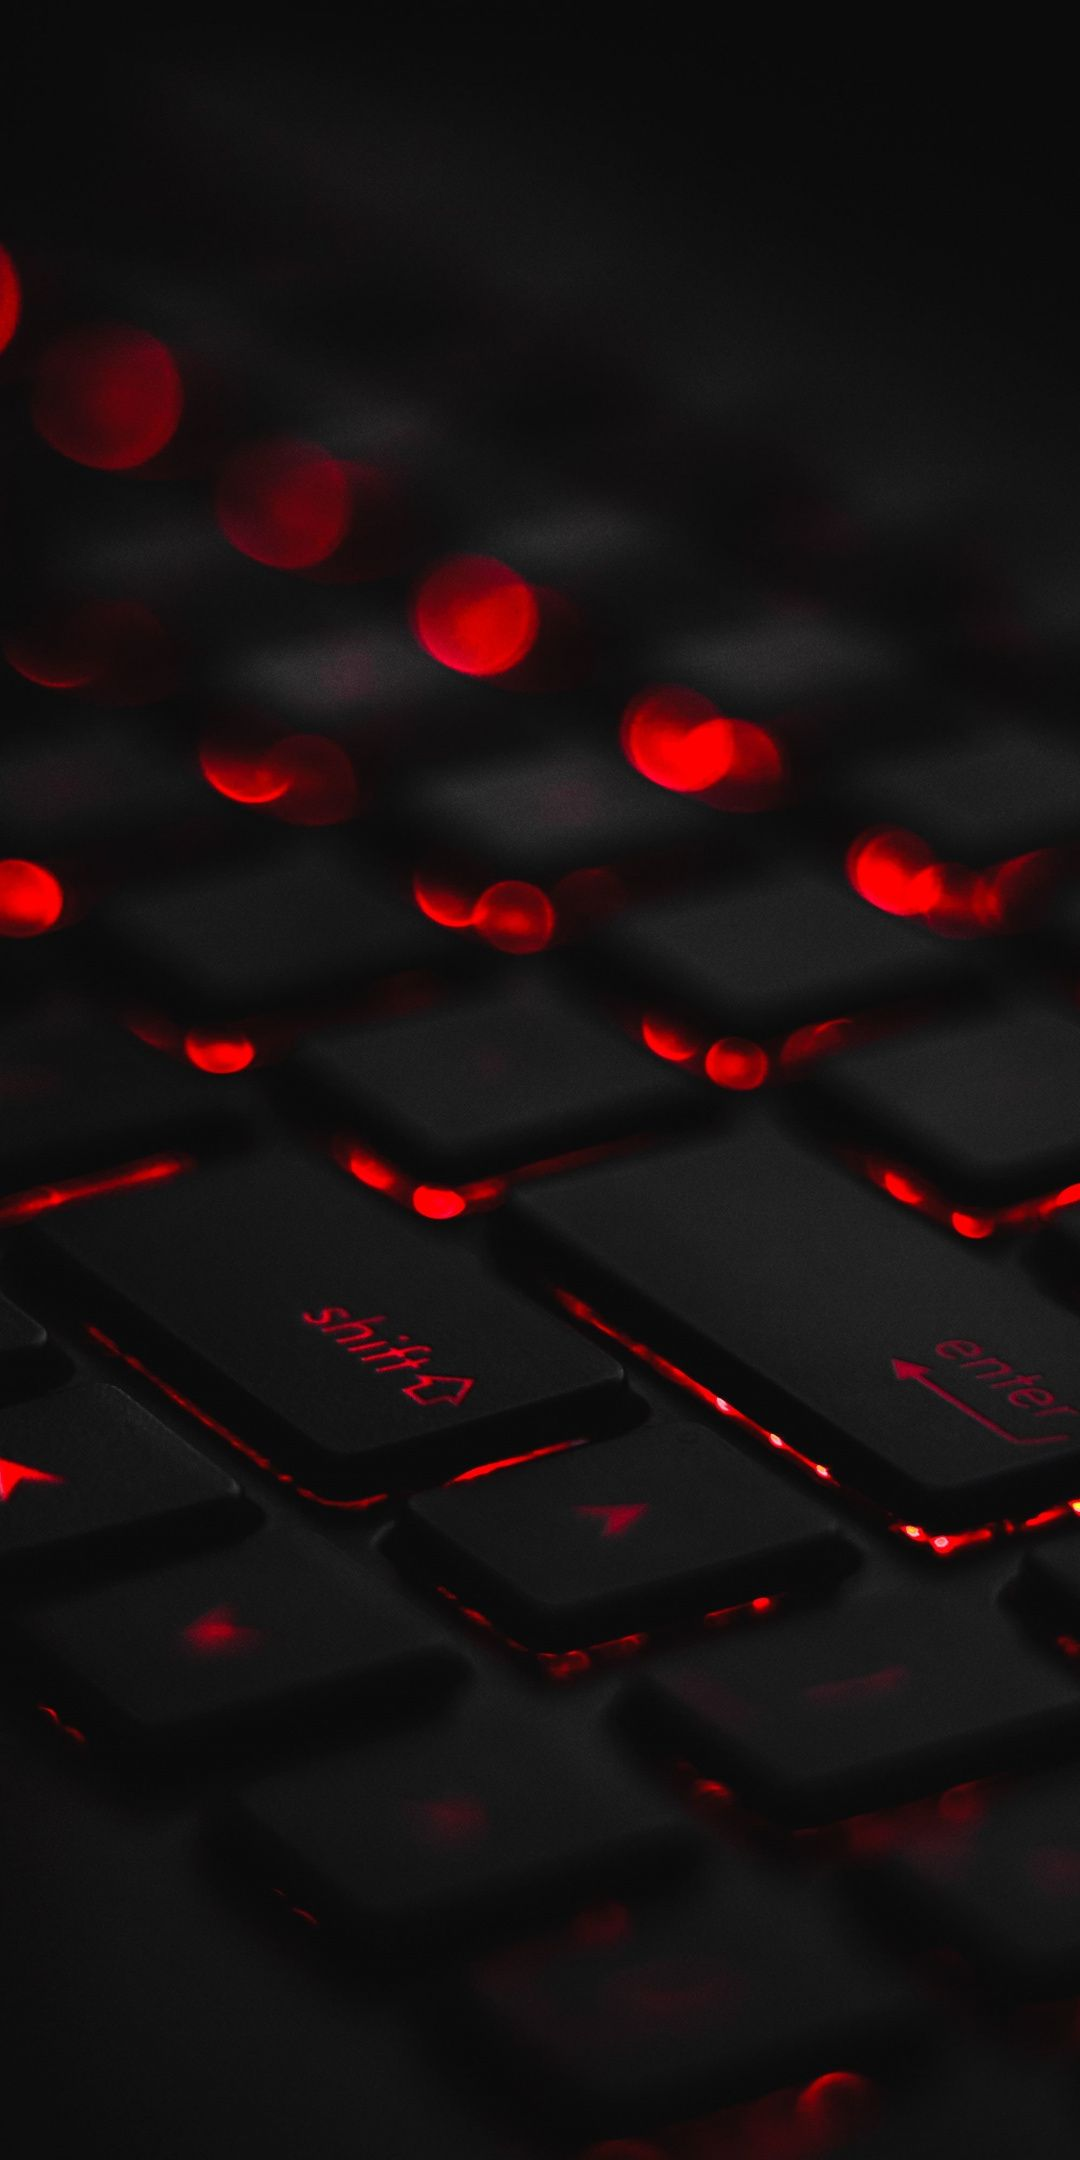 Keyboard Dark Red Glow 1080x2160 Wallpaper Bokeh Wallpaper Keyboard Hd Wallpaper Iphone